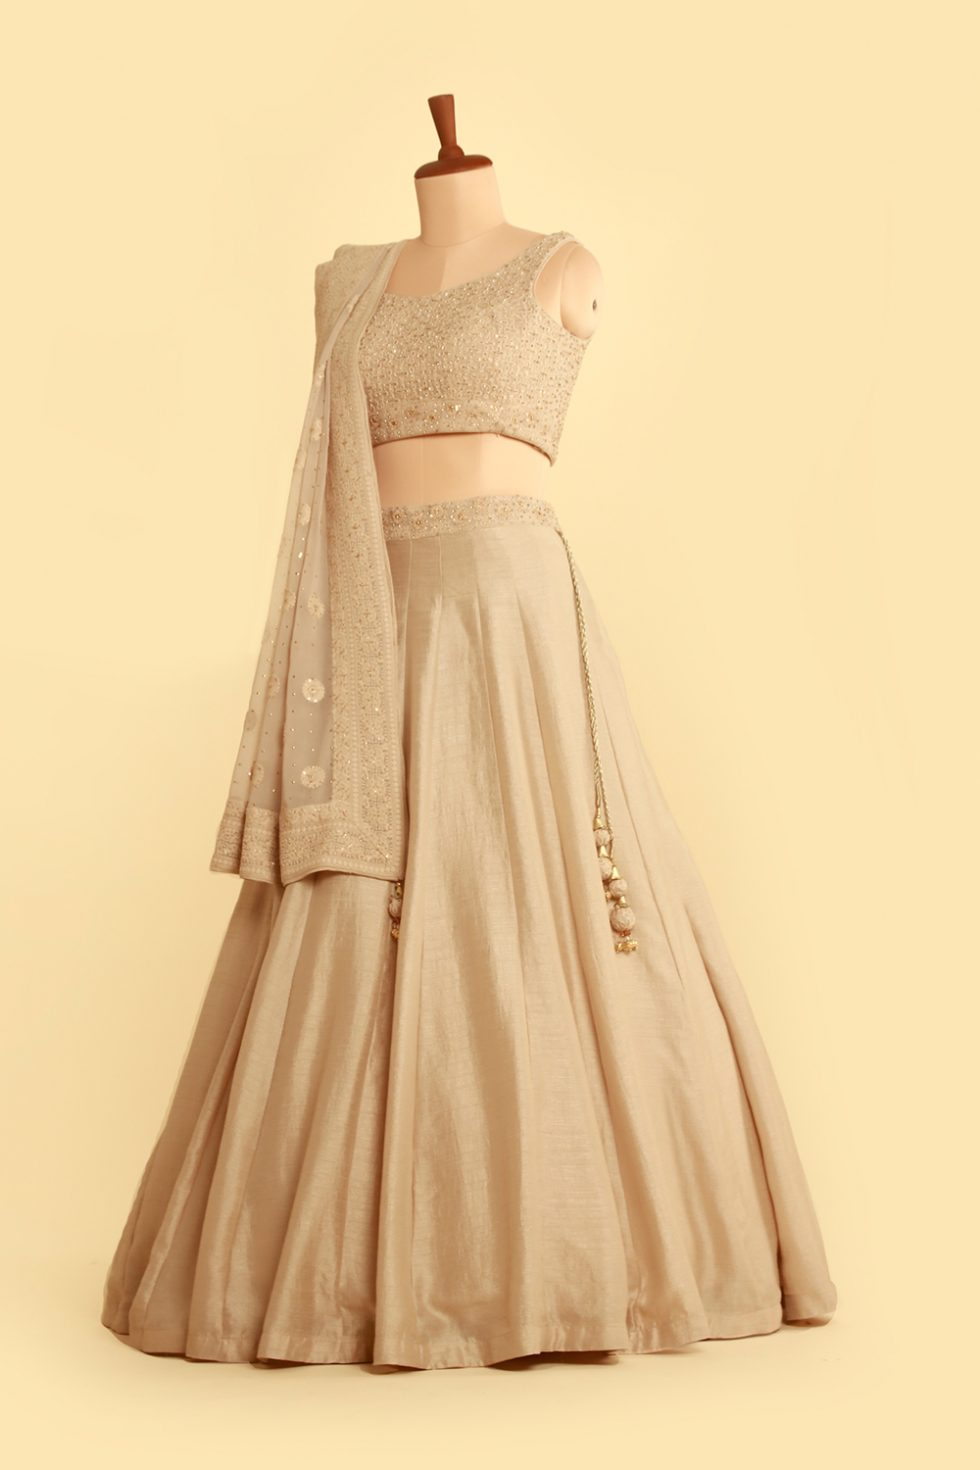 Light Grey lehenga set with matching blouse and thread embroidered dupatta with gold embellishments